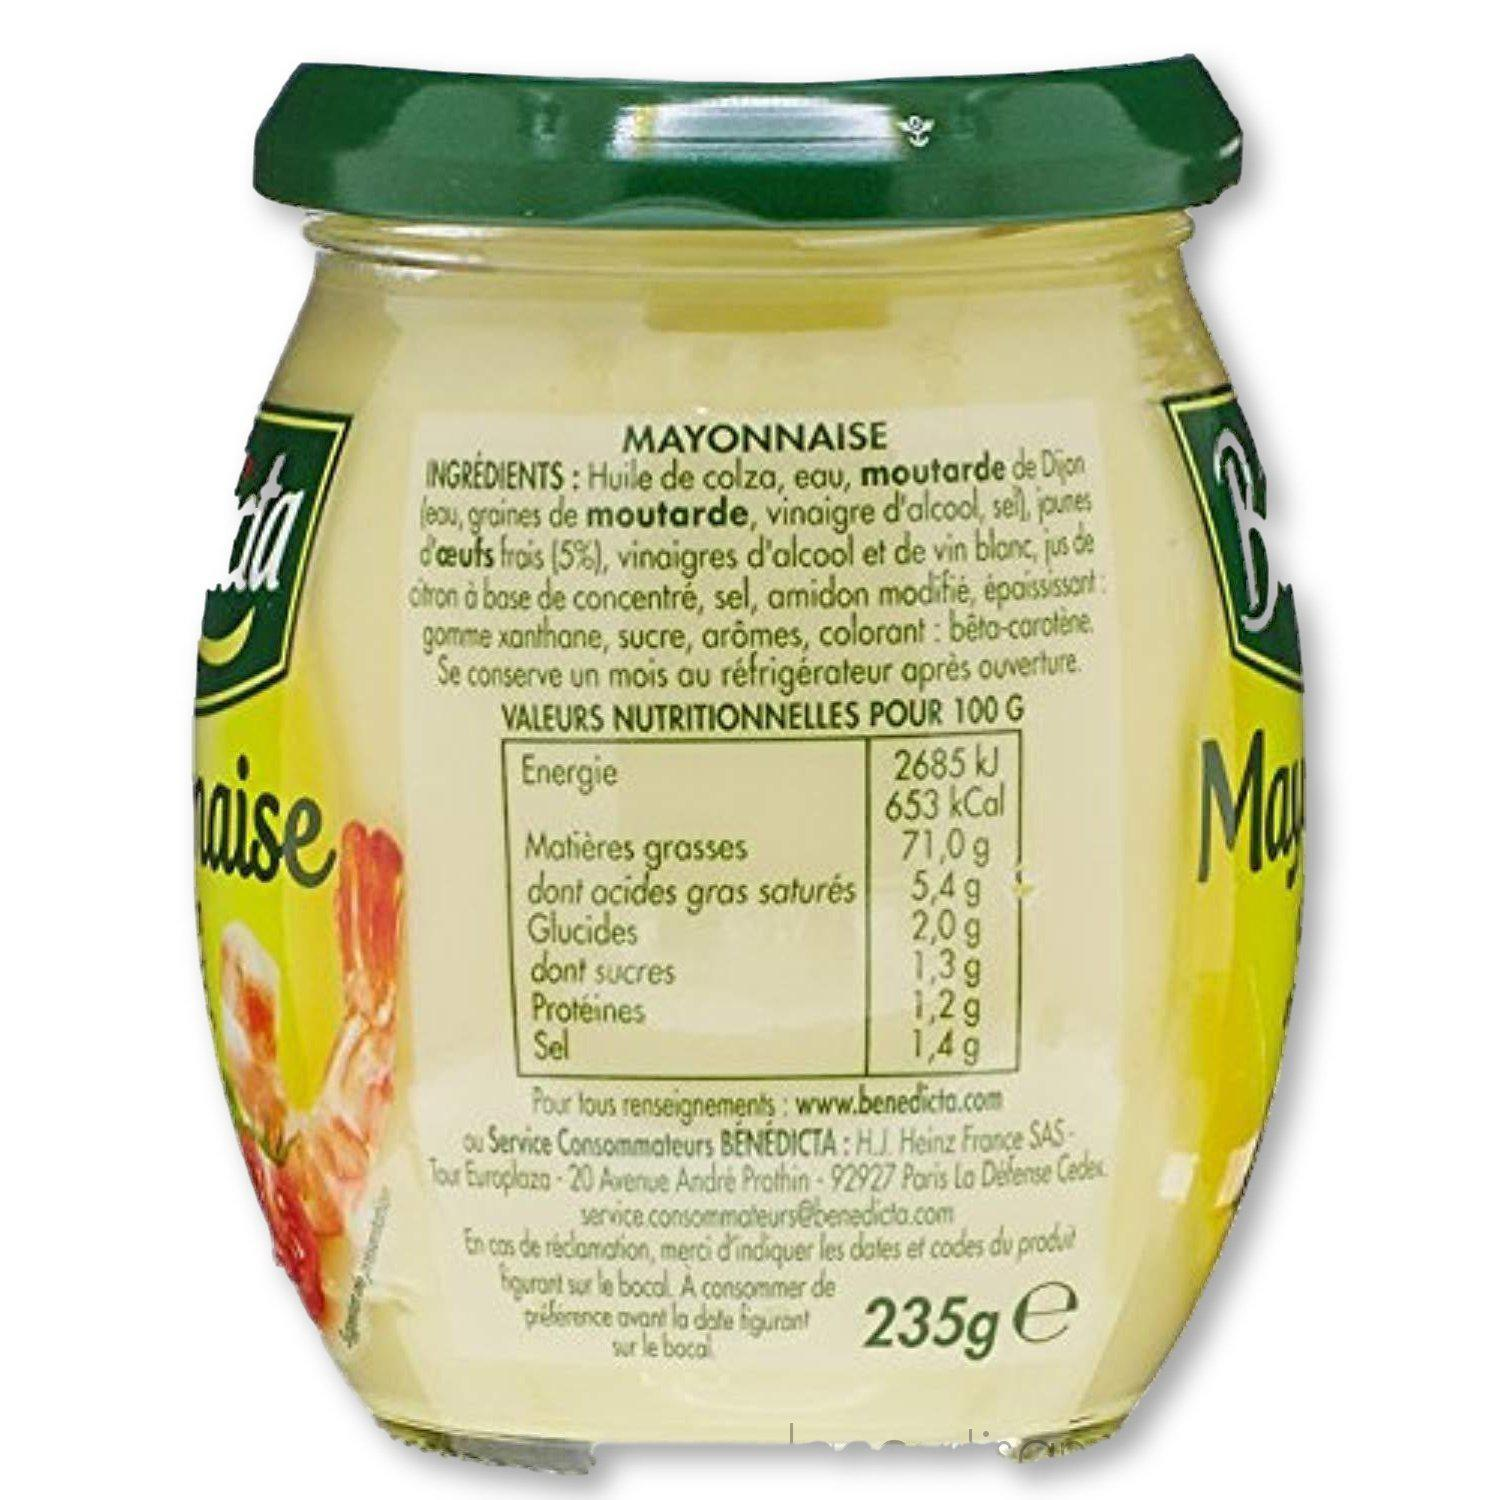 Benedicta - Gourmet Mayonnaise, French Mayonnaise 8.8Oz (235G) - mayonnaise - La Courtisane Gourmet Food